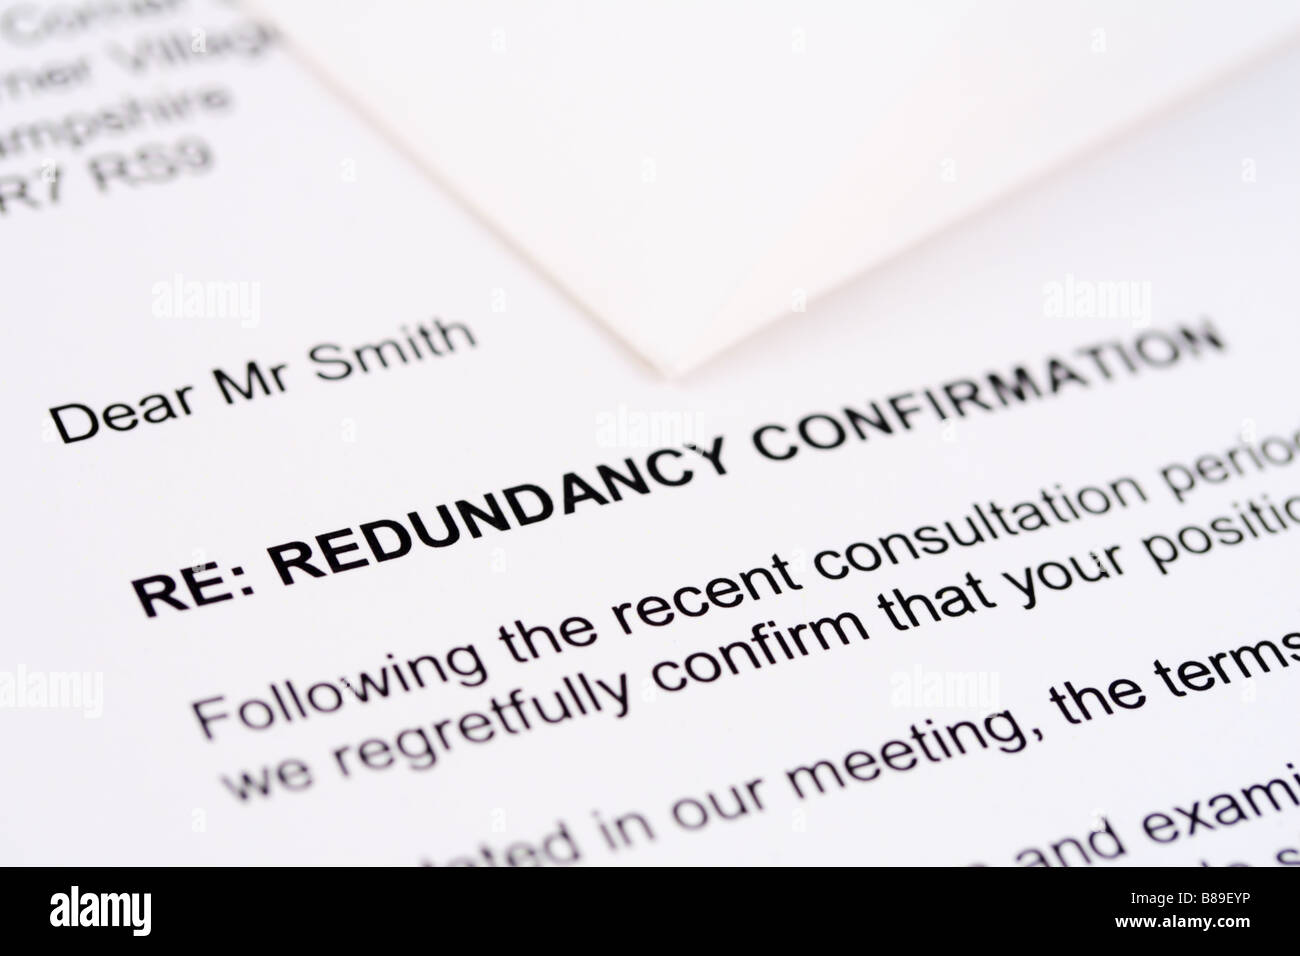 A redundancy letter with envelope - Stock Image